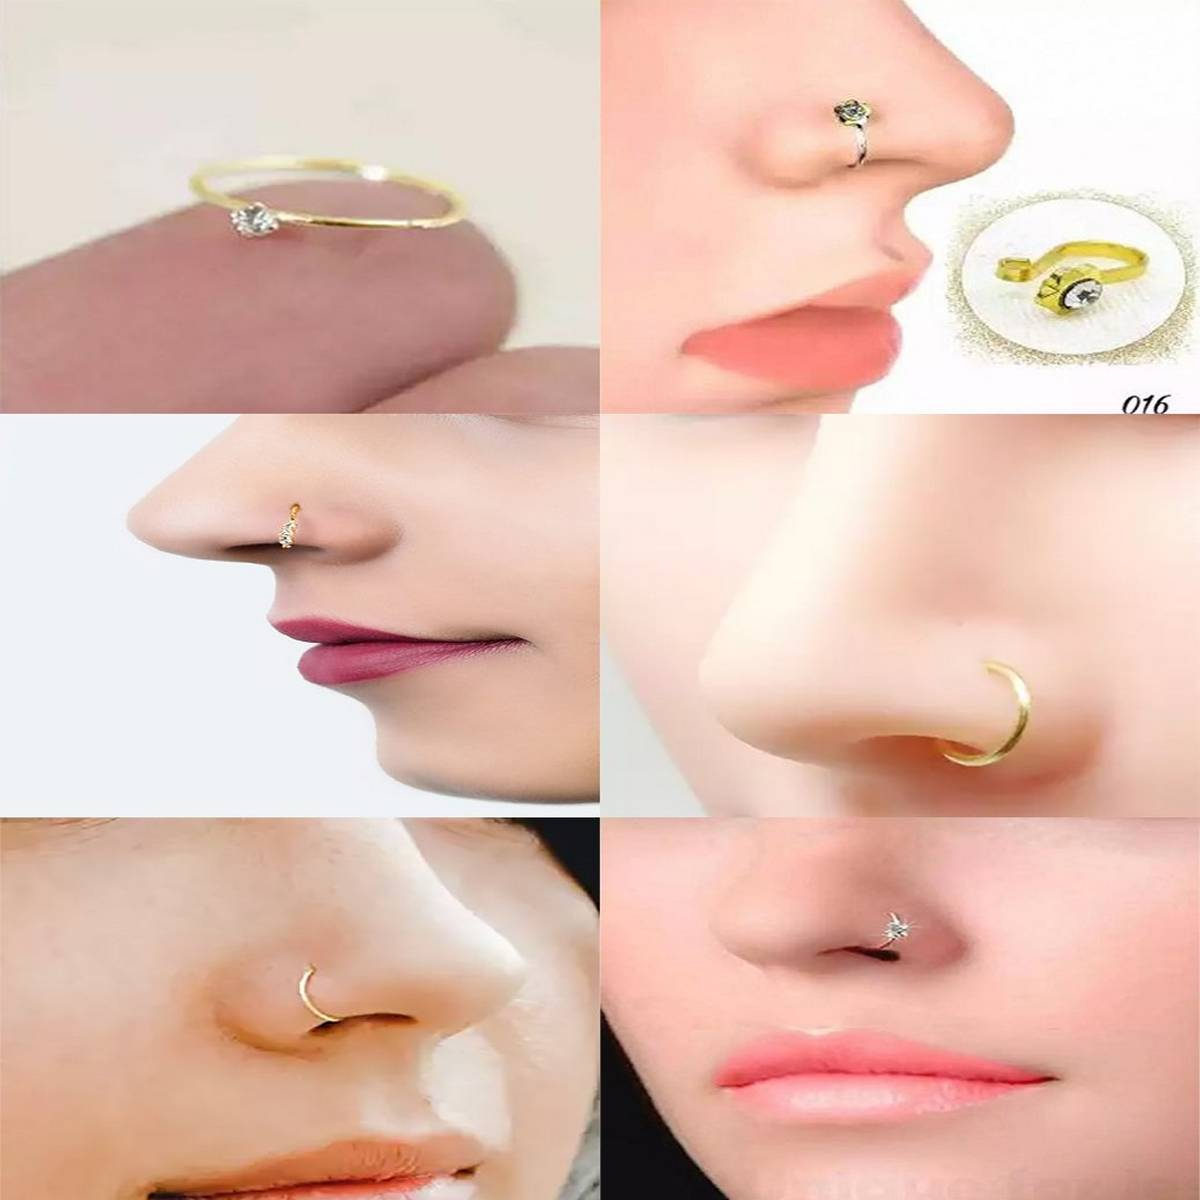 6Pcs nose ring Stainless Steel golden Nose Piercing Ring with shinning silver stones Hoop Nose latest designed Women/girls Jewellery 2020